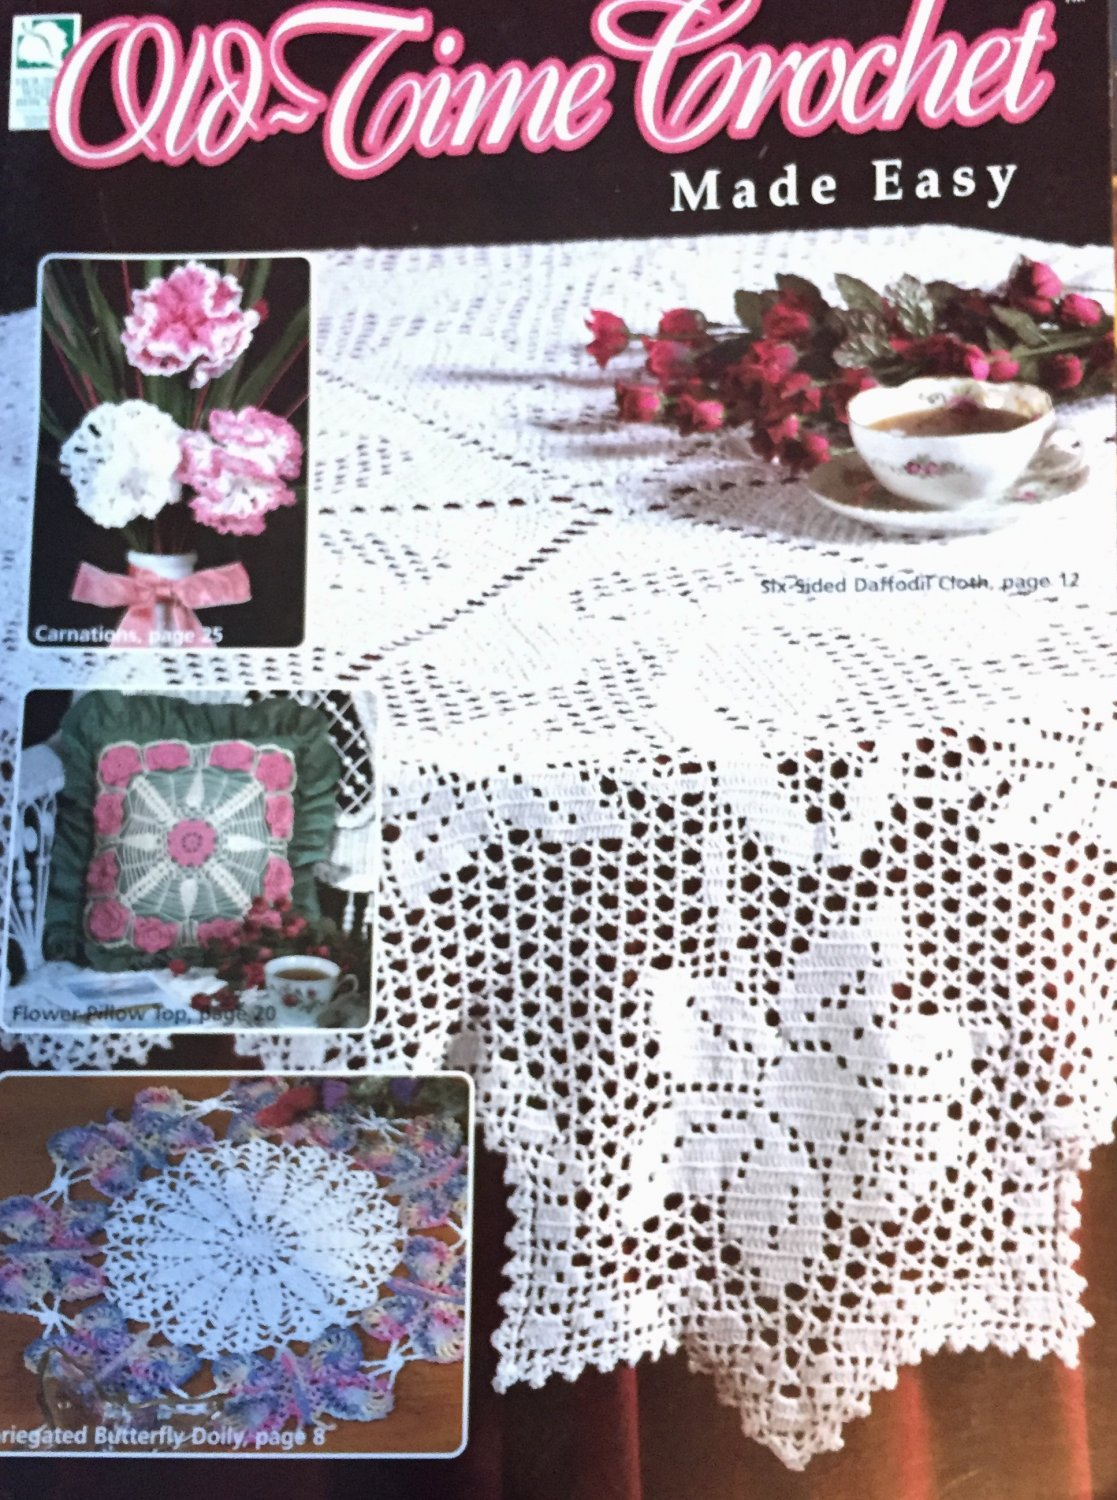 House of White Birches 101057 Old - Time Crochet Made Easy Doilies Thread crochet